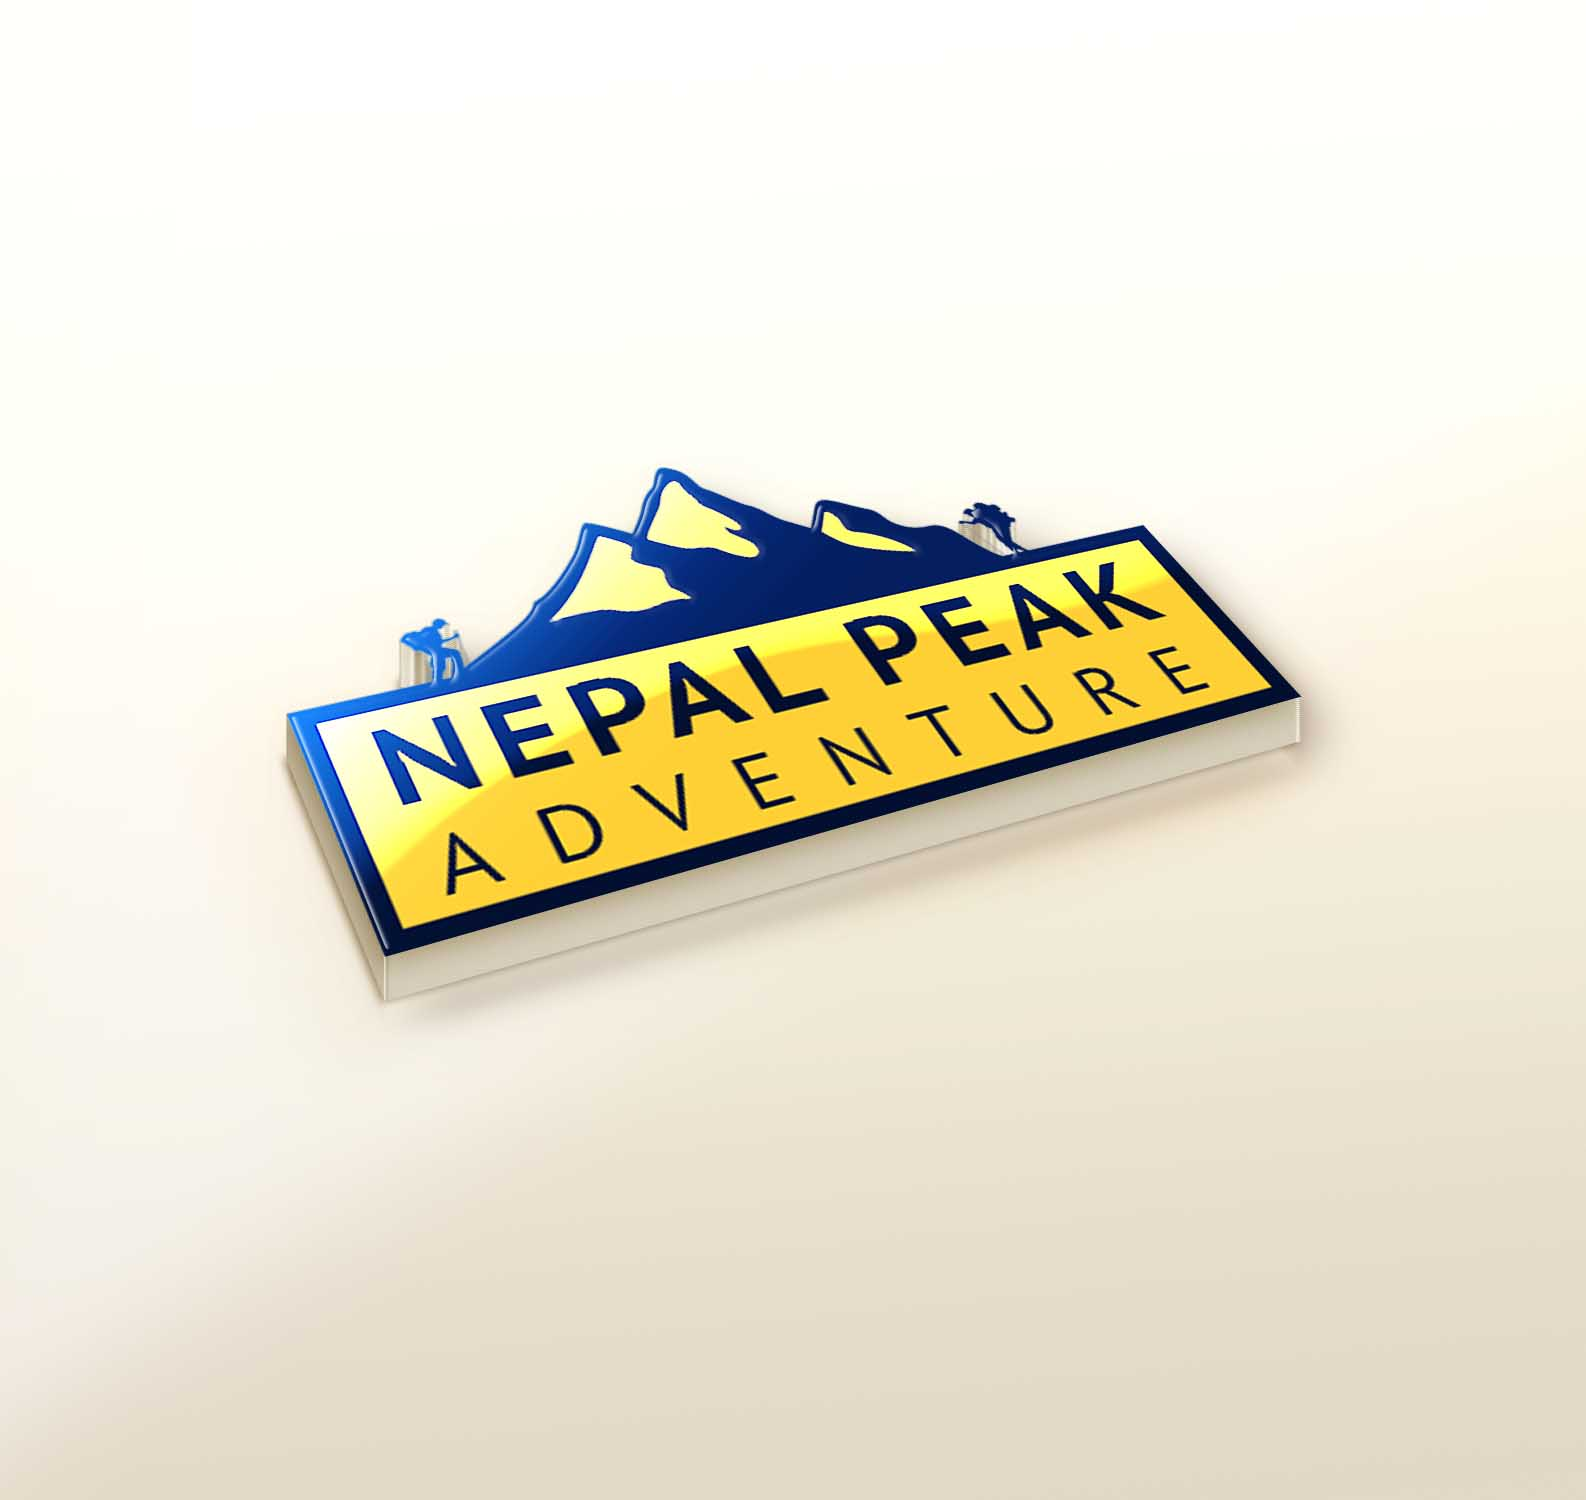 Why Nepal Peak Adventures